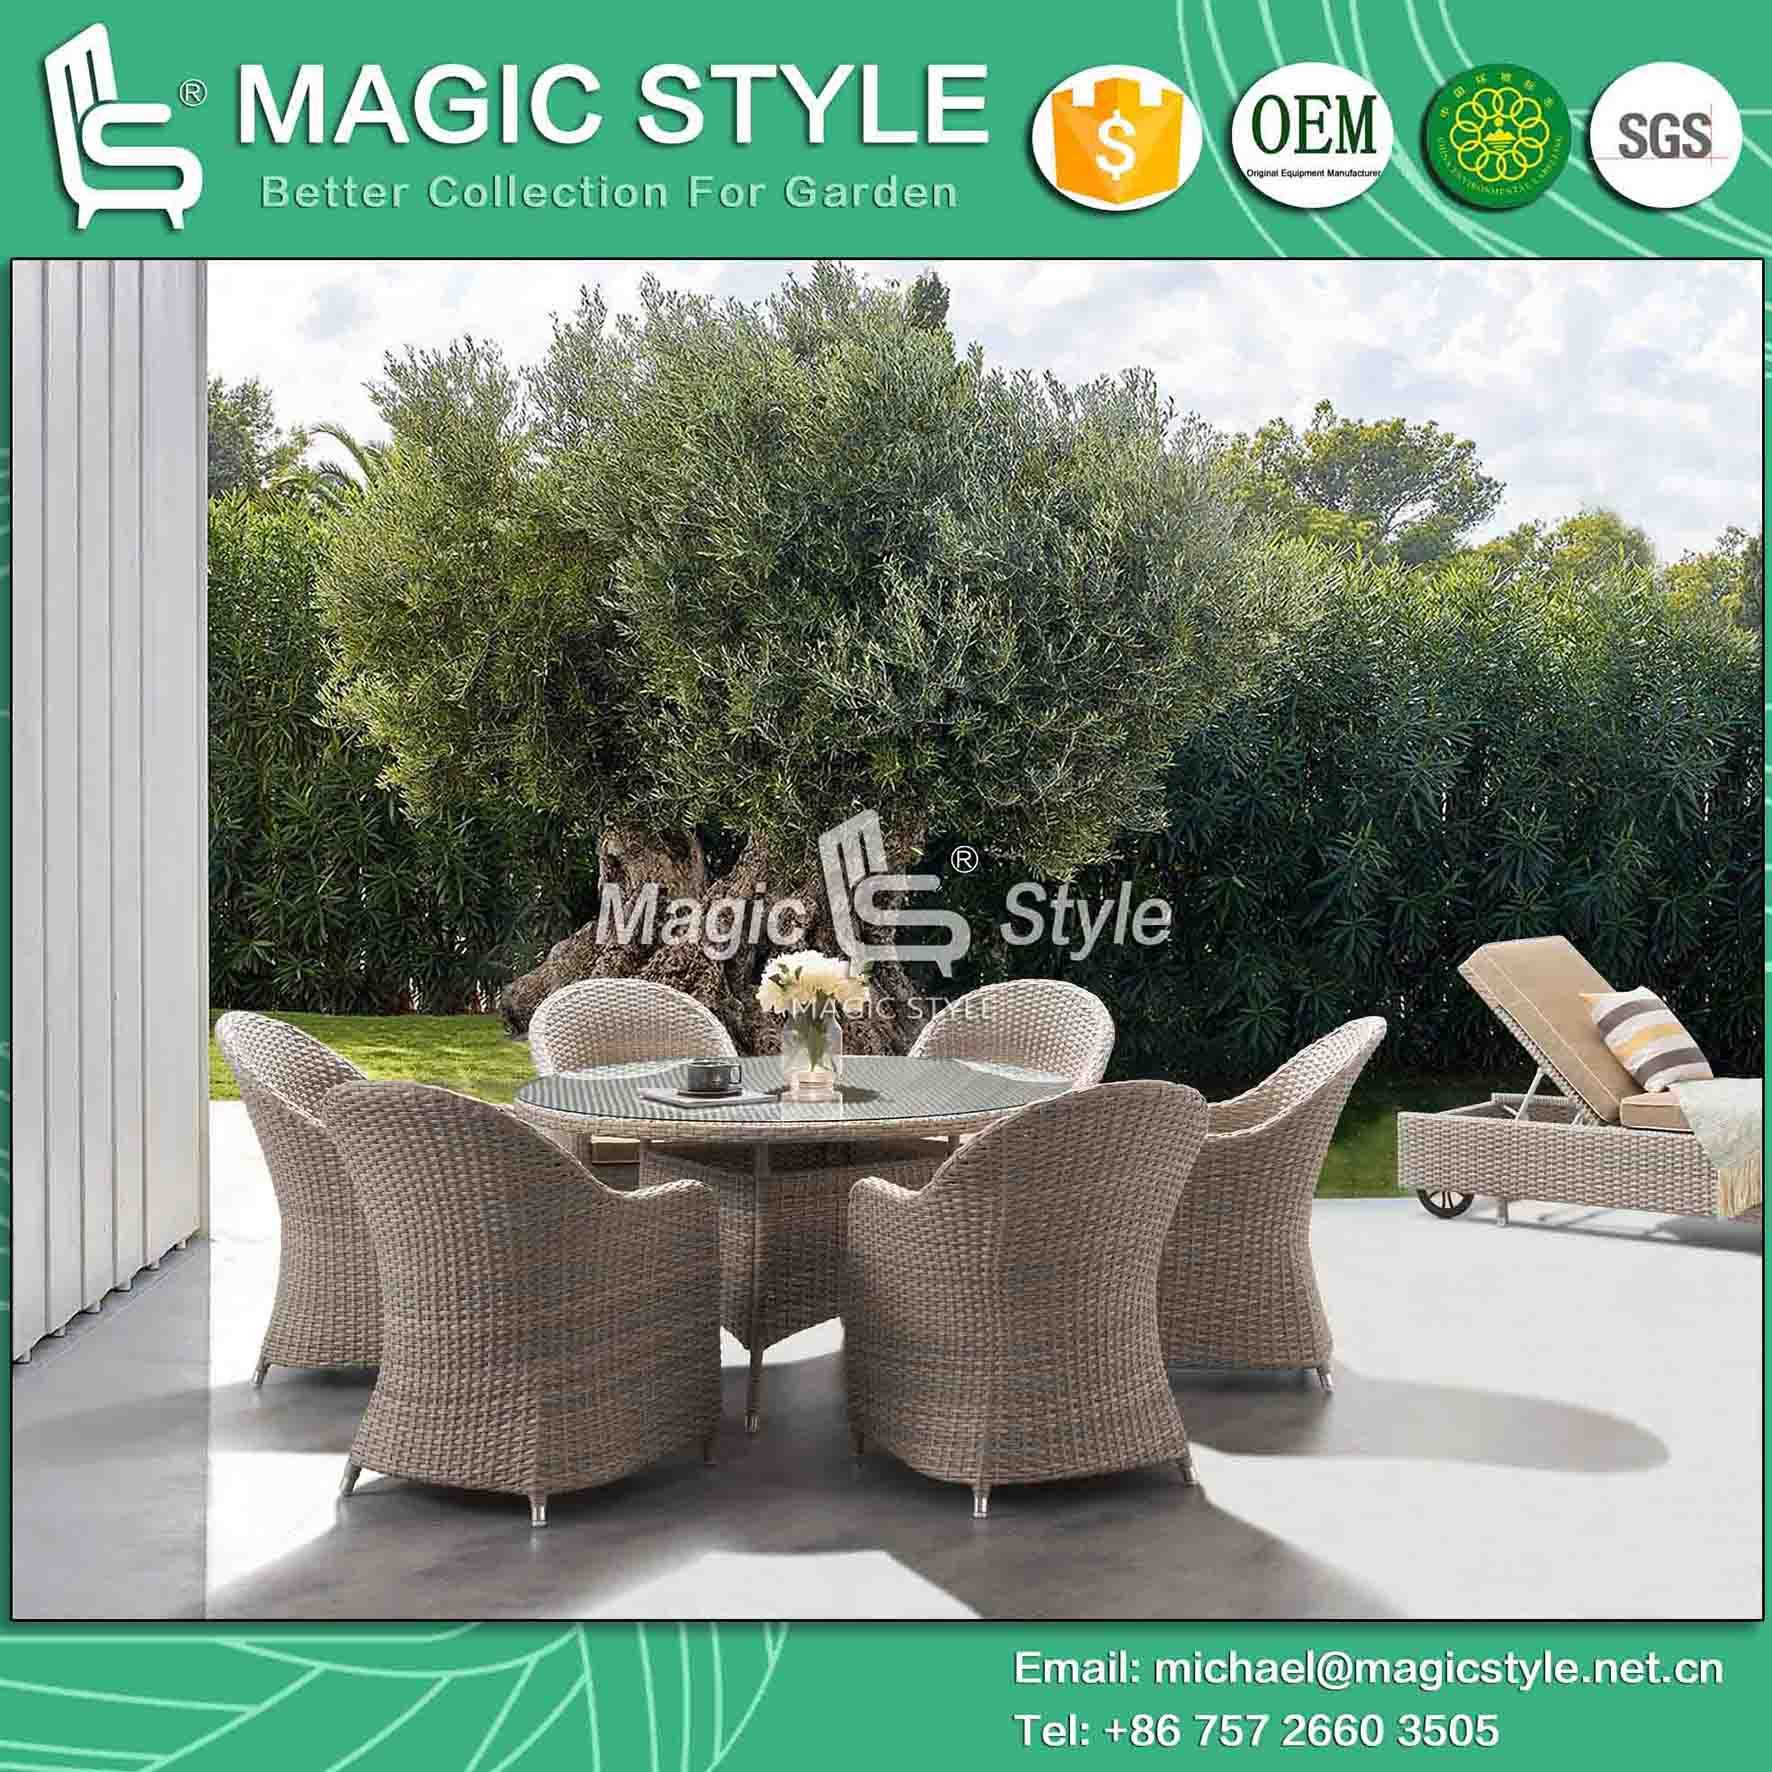 Rattan Wicker Dining Set With Sunproof Cushion Outdoor Dining Chair Garden Dining  Table Wicker Weaving Dining Set Patio Wicker Coffee Chair